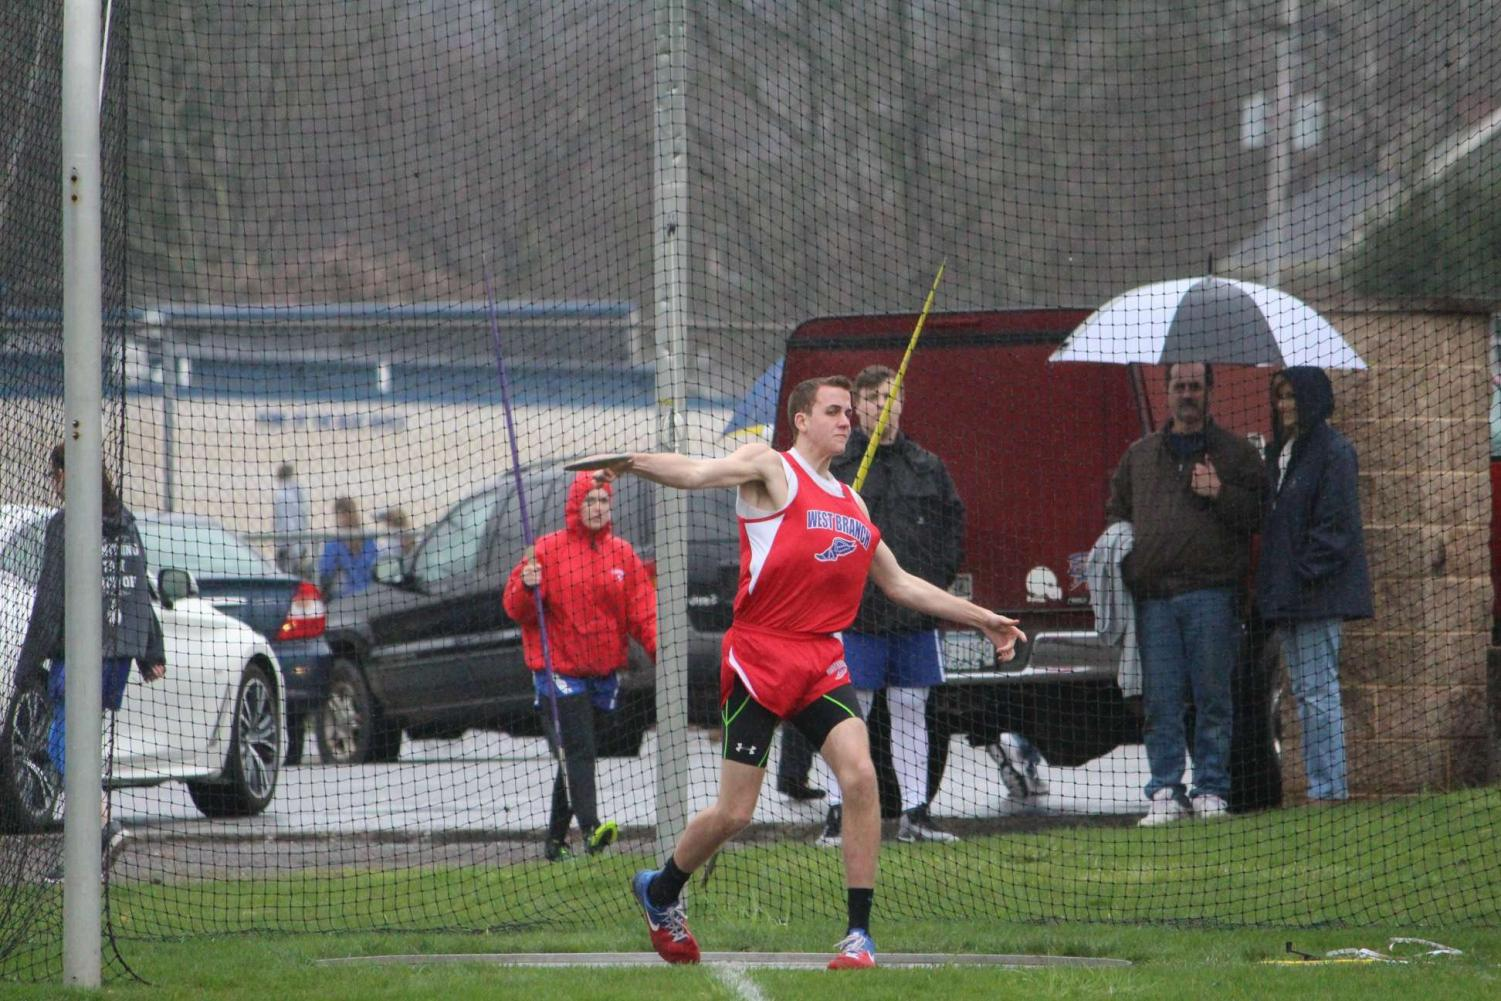 Larry winds up to throw a discus during a meet this season.